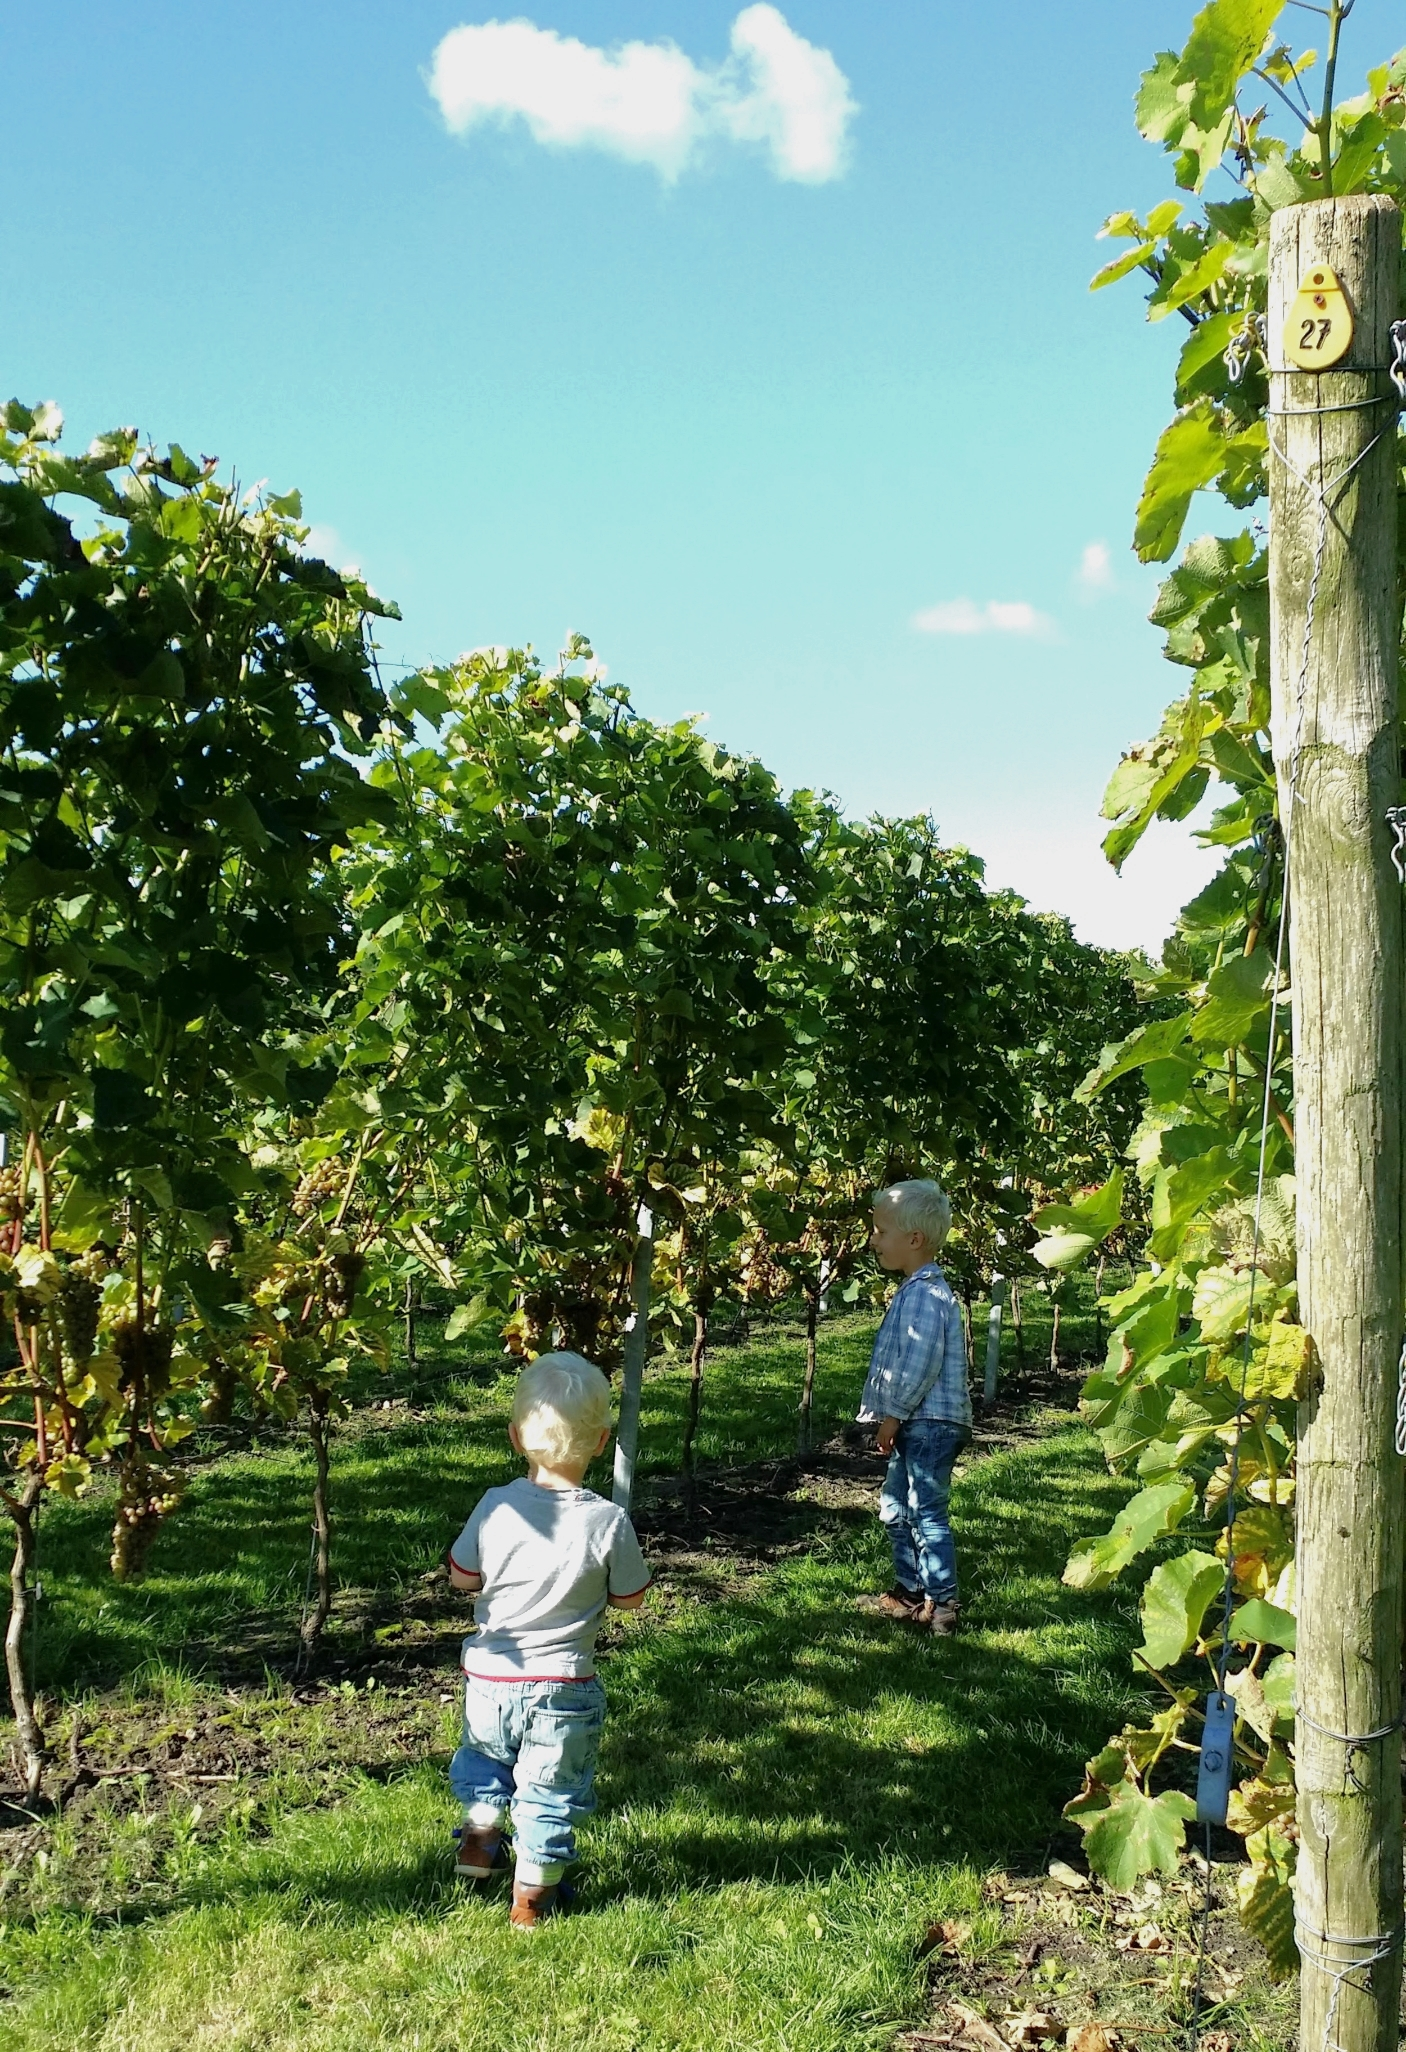 Saalhoff Vineyard, Wijnaard Saalhoff for kids